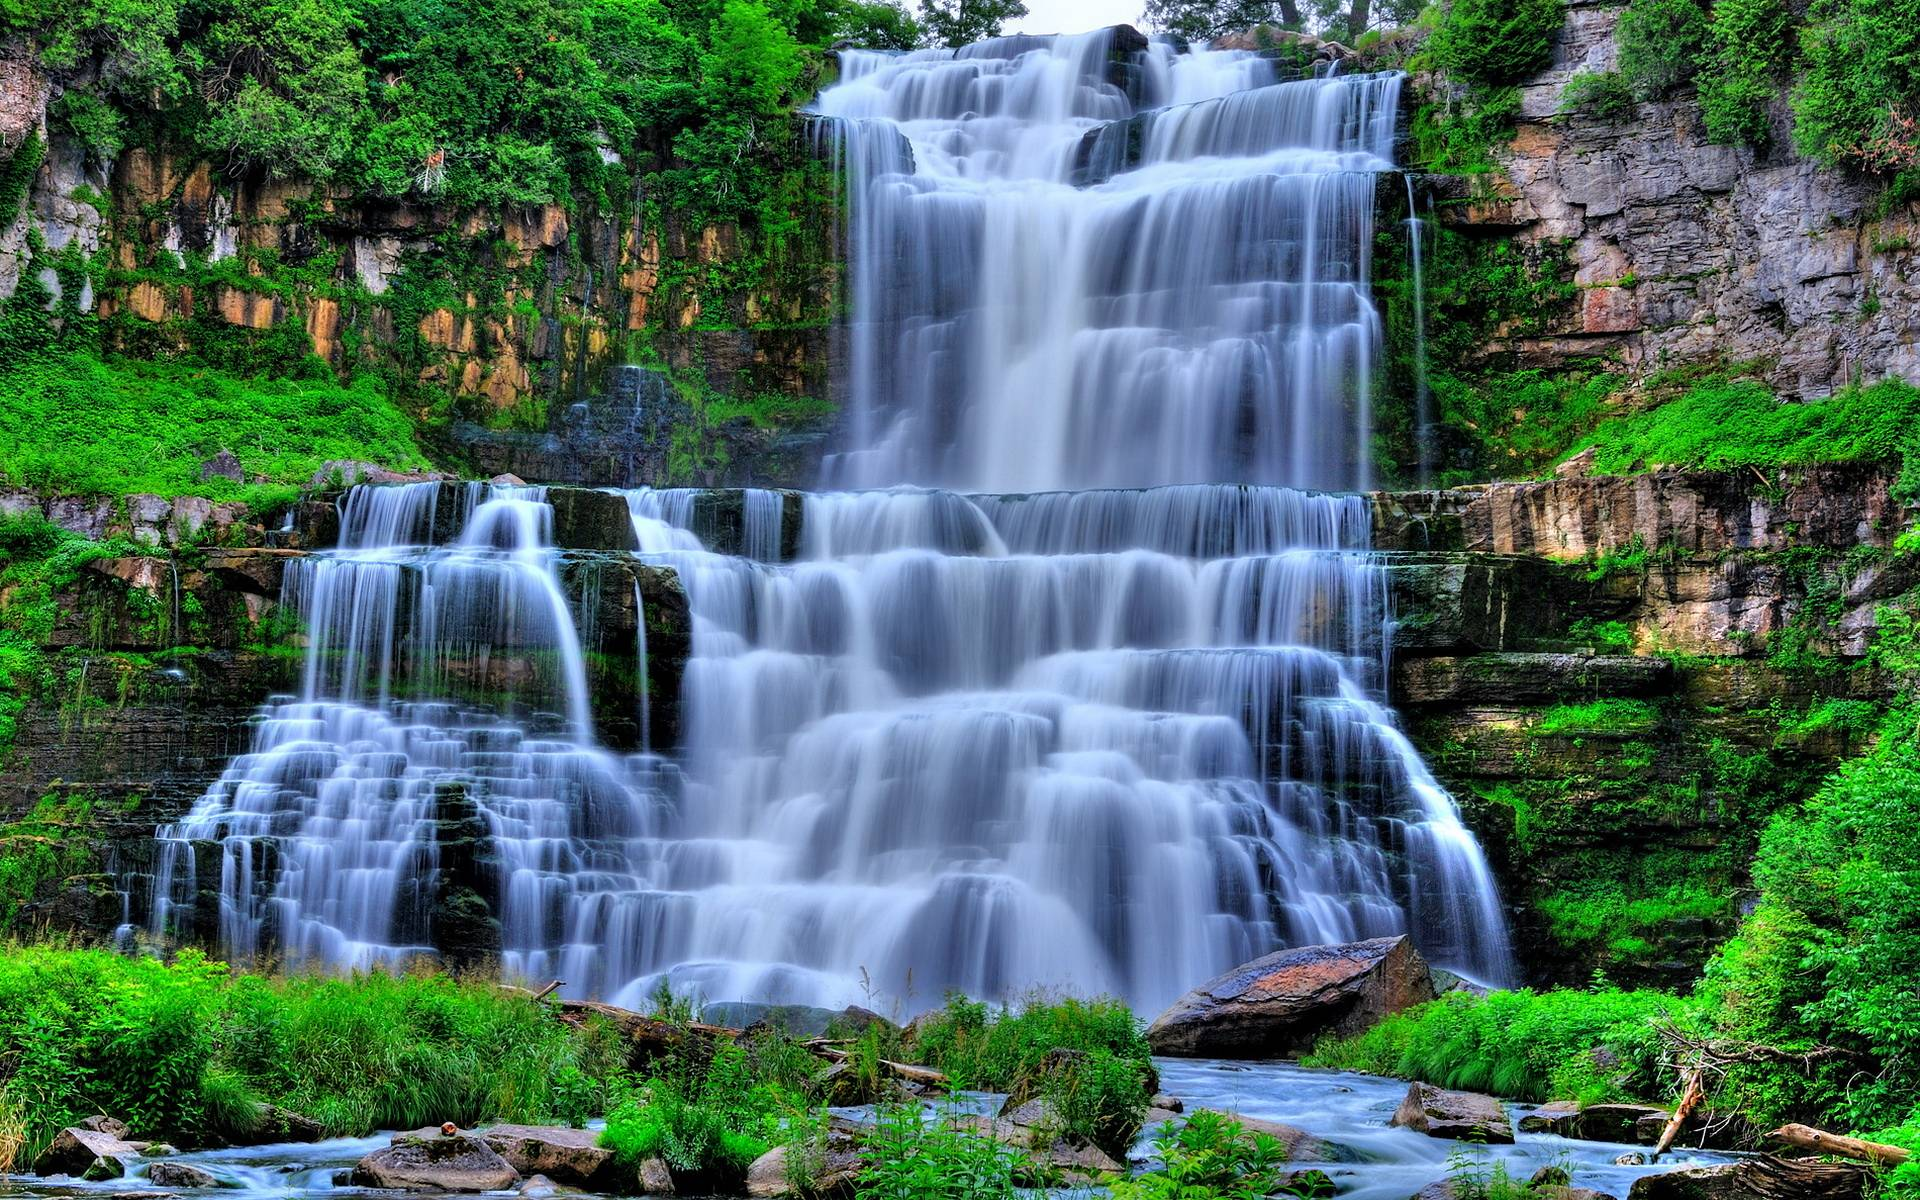 Hd Waterfall Wallpapers Top Free Hd Waterfall Backgrounds Wallpaperaccess